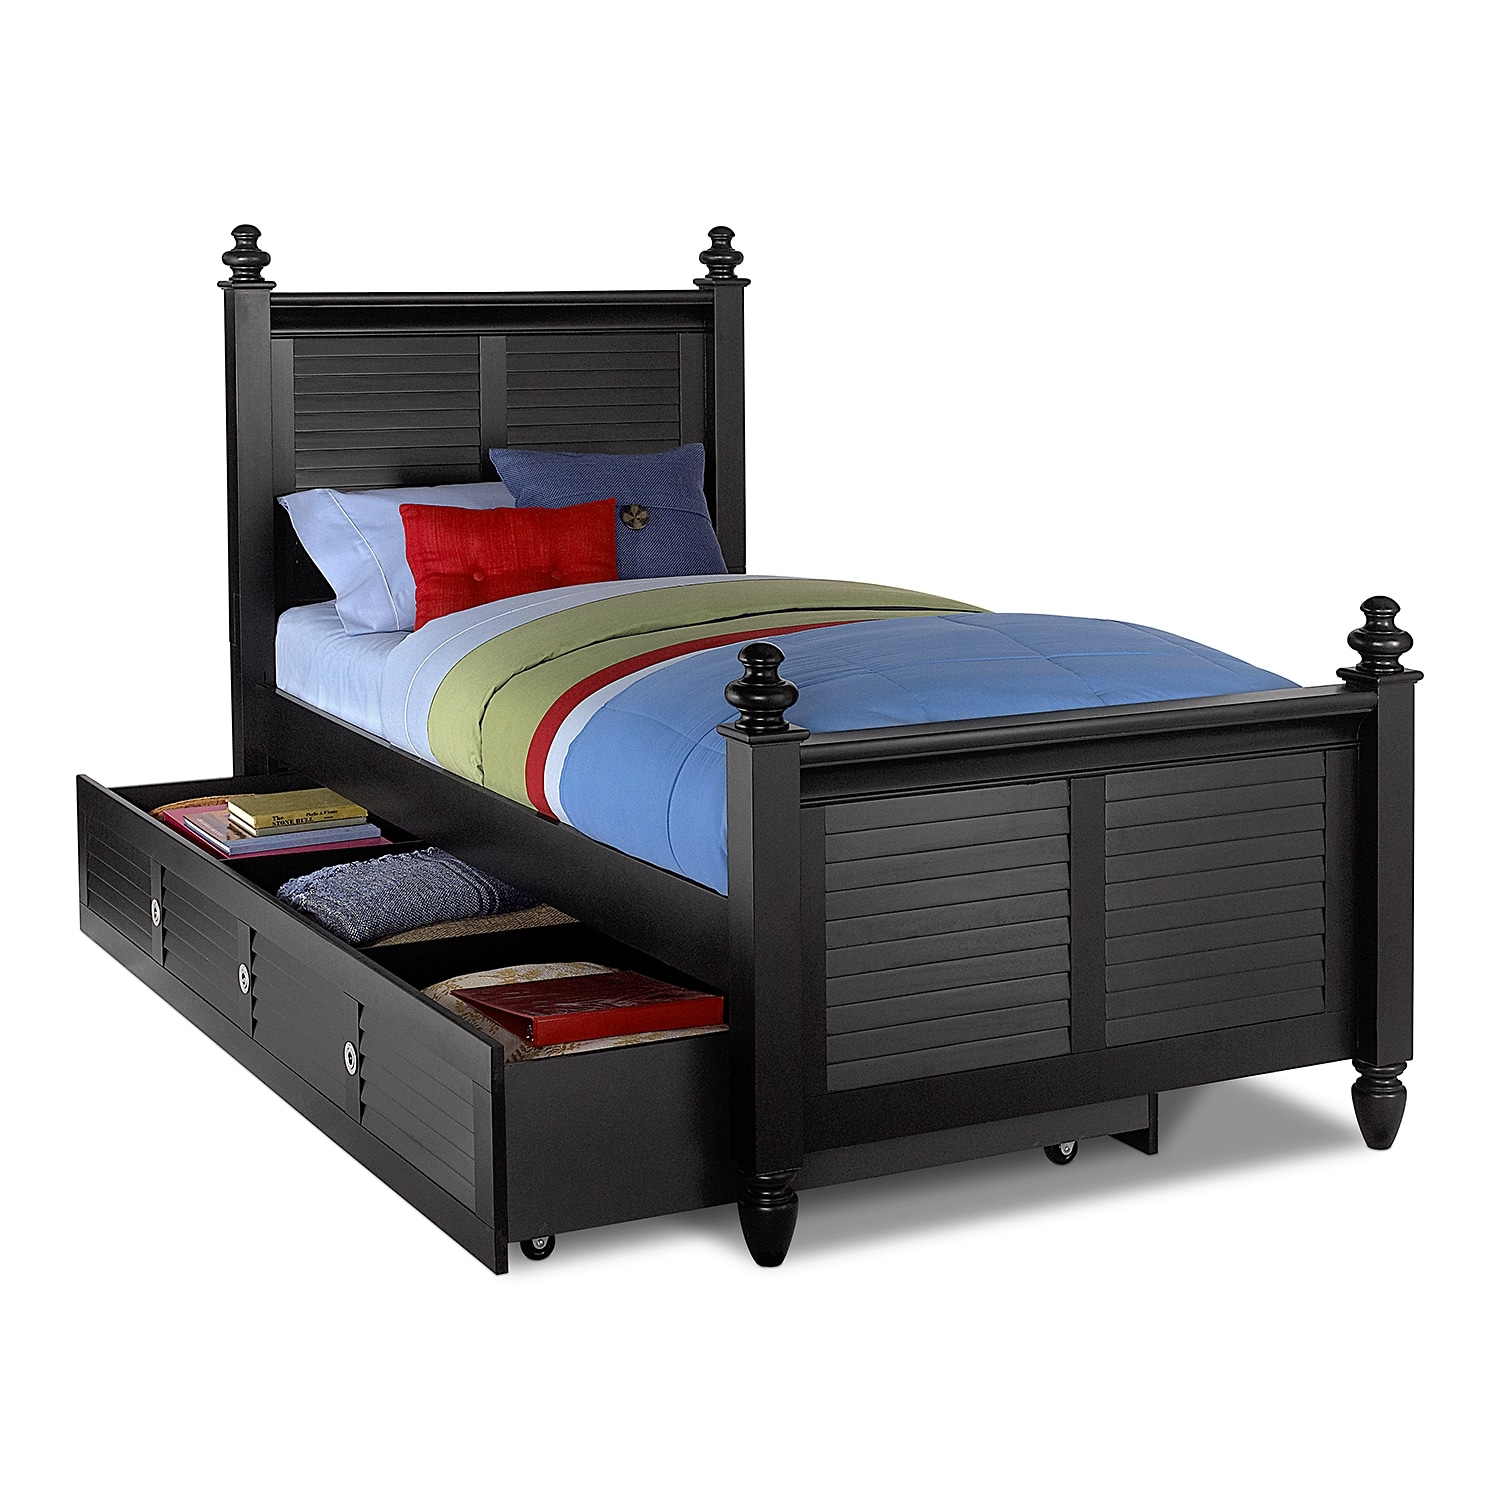 Kids Furniture - Mayflower Black Full Bed with Trundle